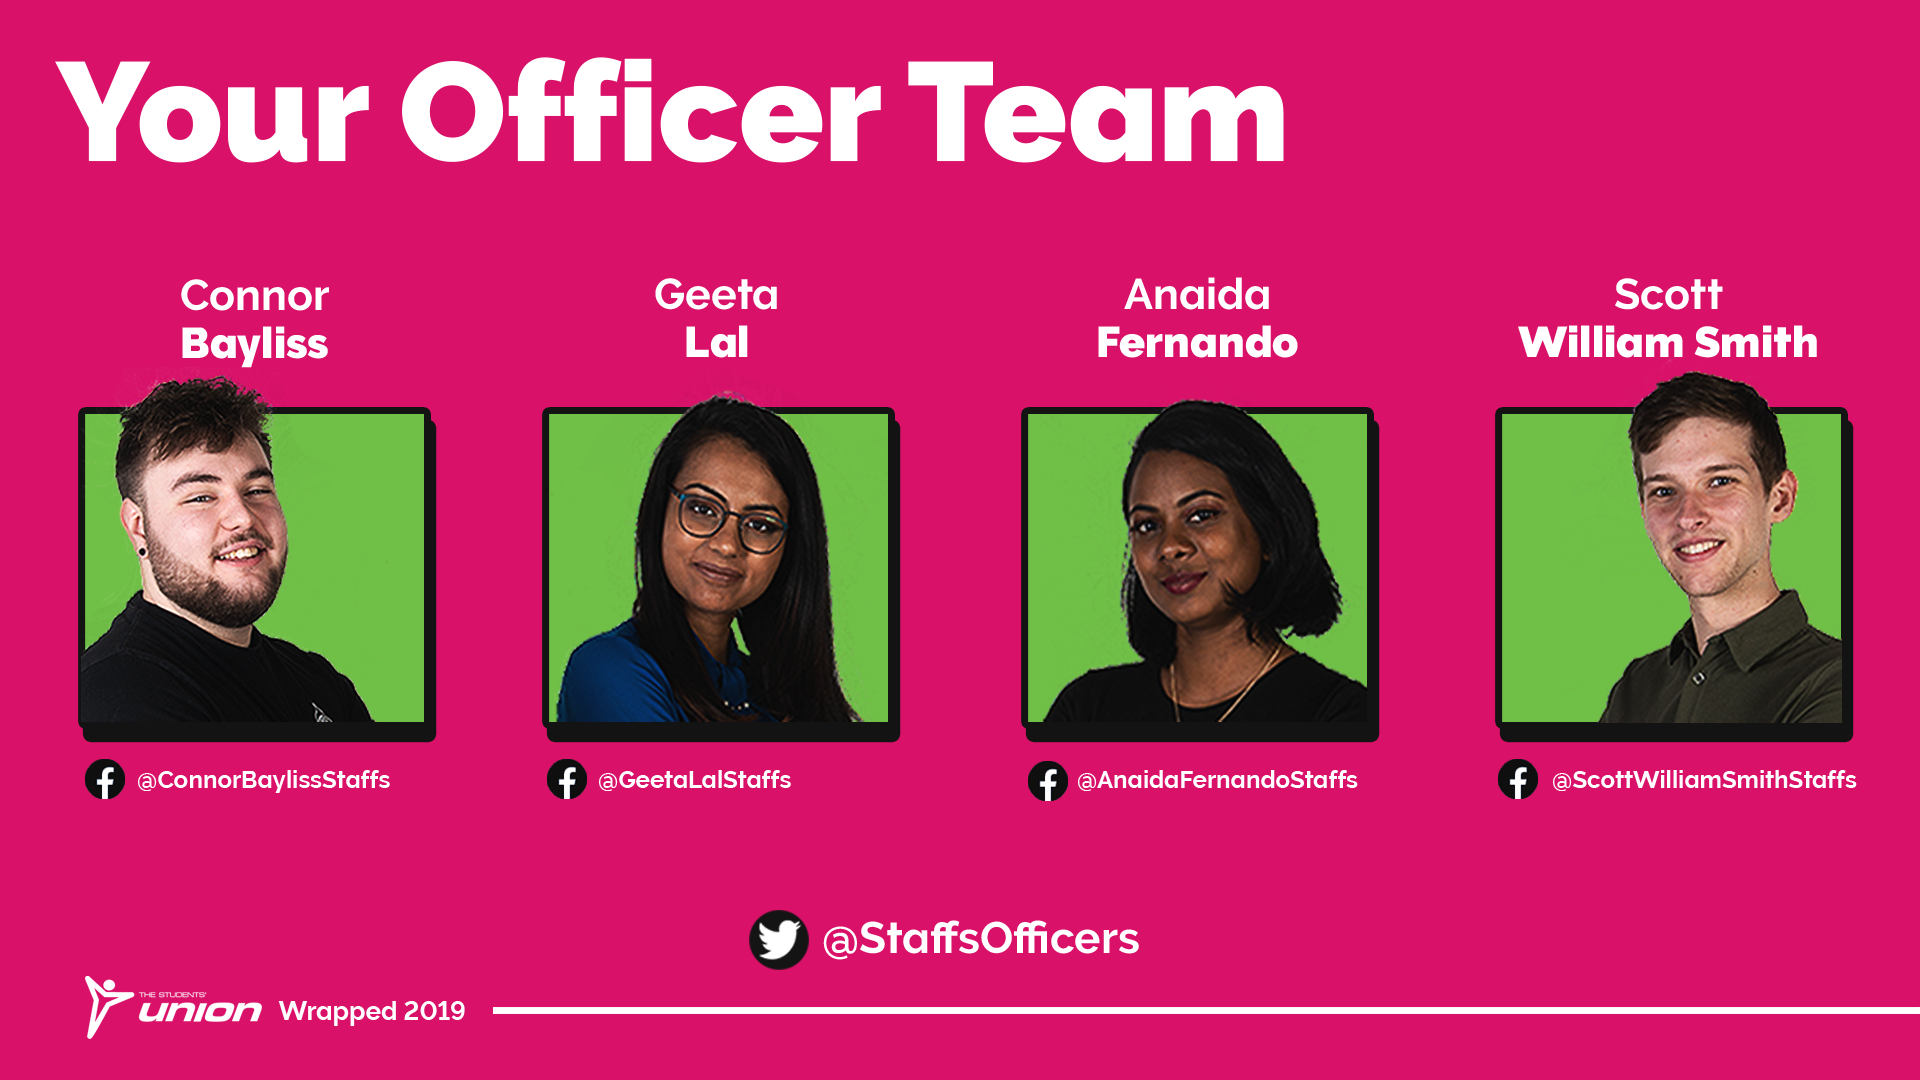 Your Officer Team. Connor Bayliss, Geeta Lal, Anaida Fernando and Scott William Smith.